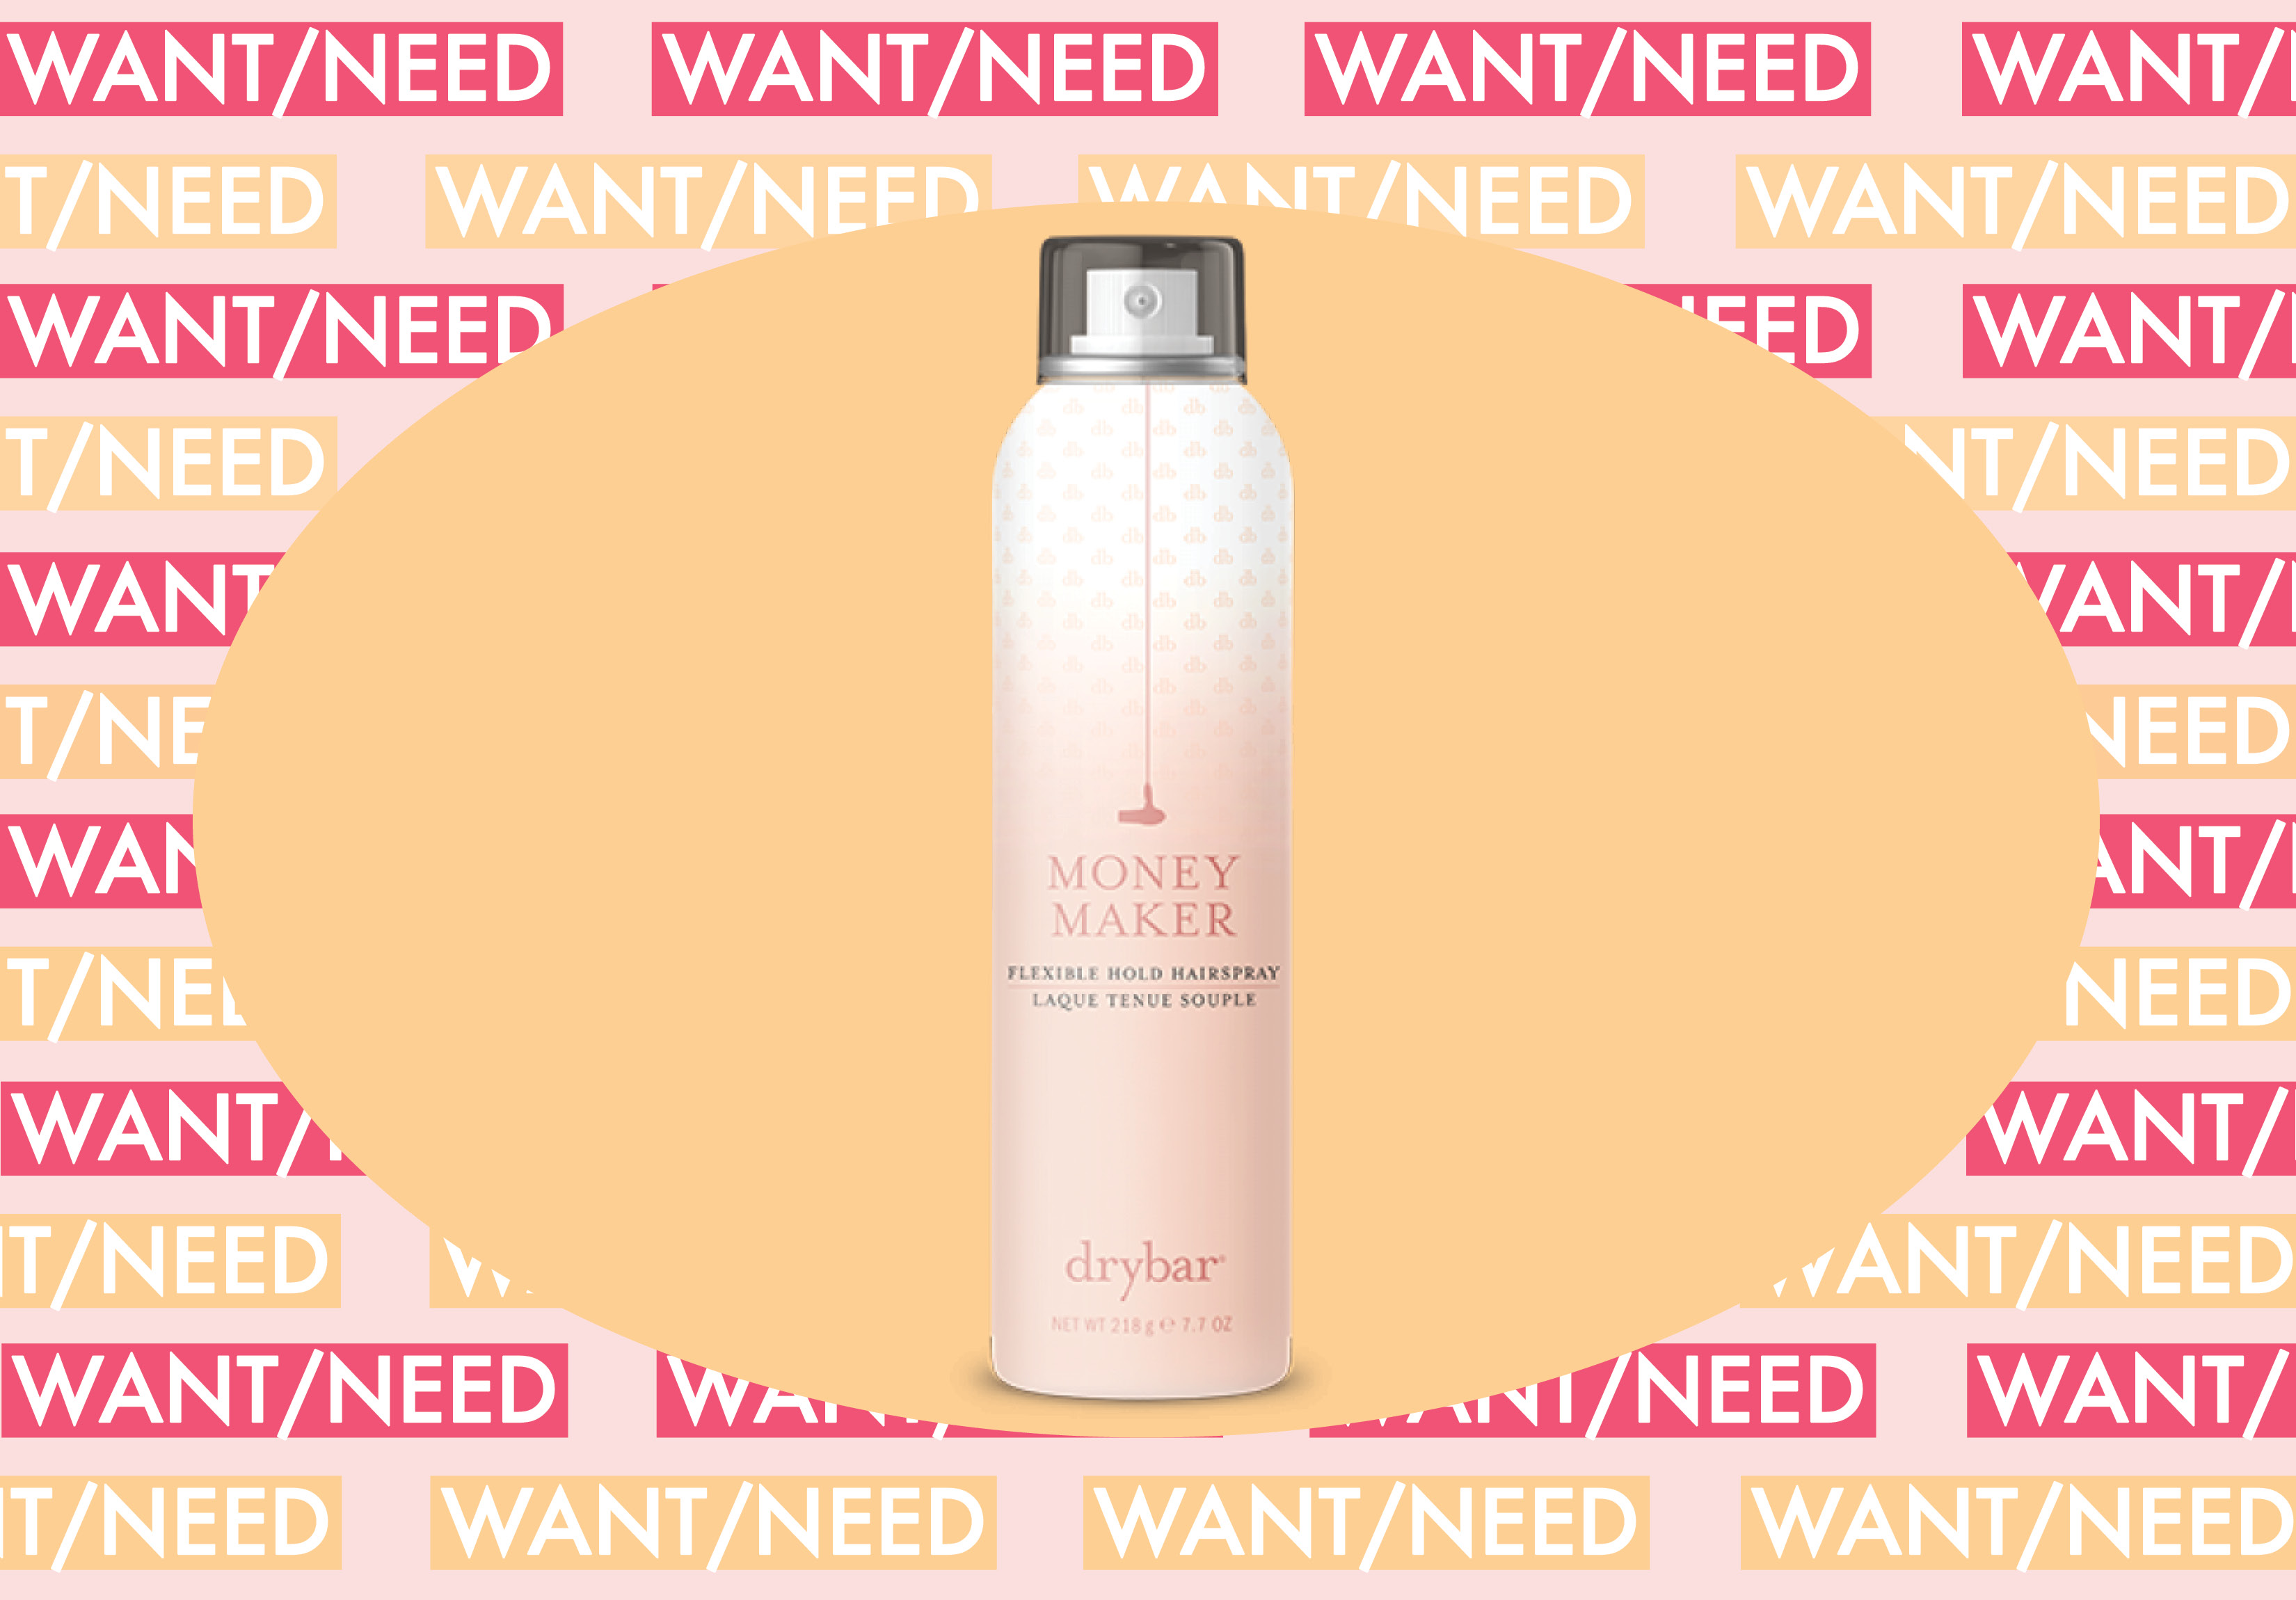 WANT/NEED: A hairspray that will guarantee good hair days, and more stuff you'll want to buy